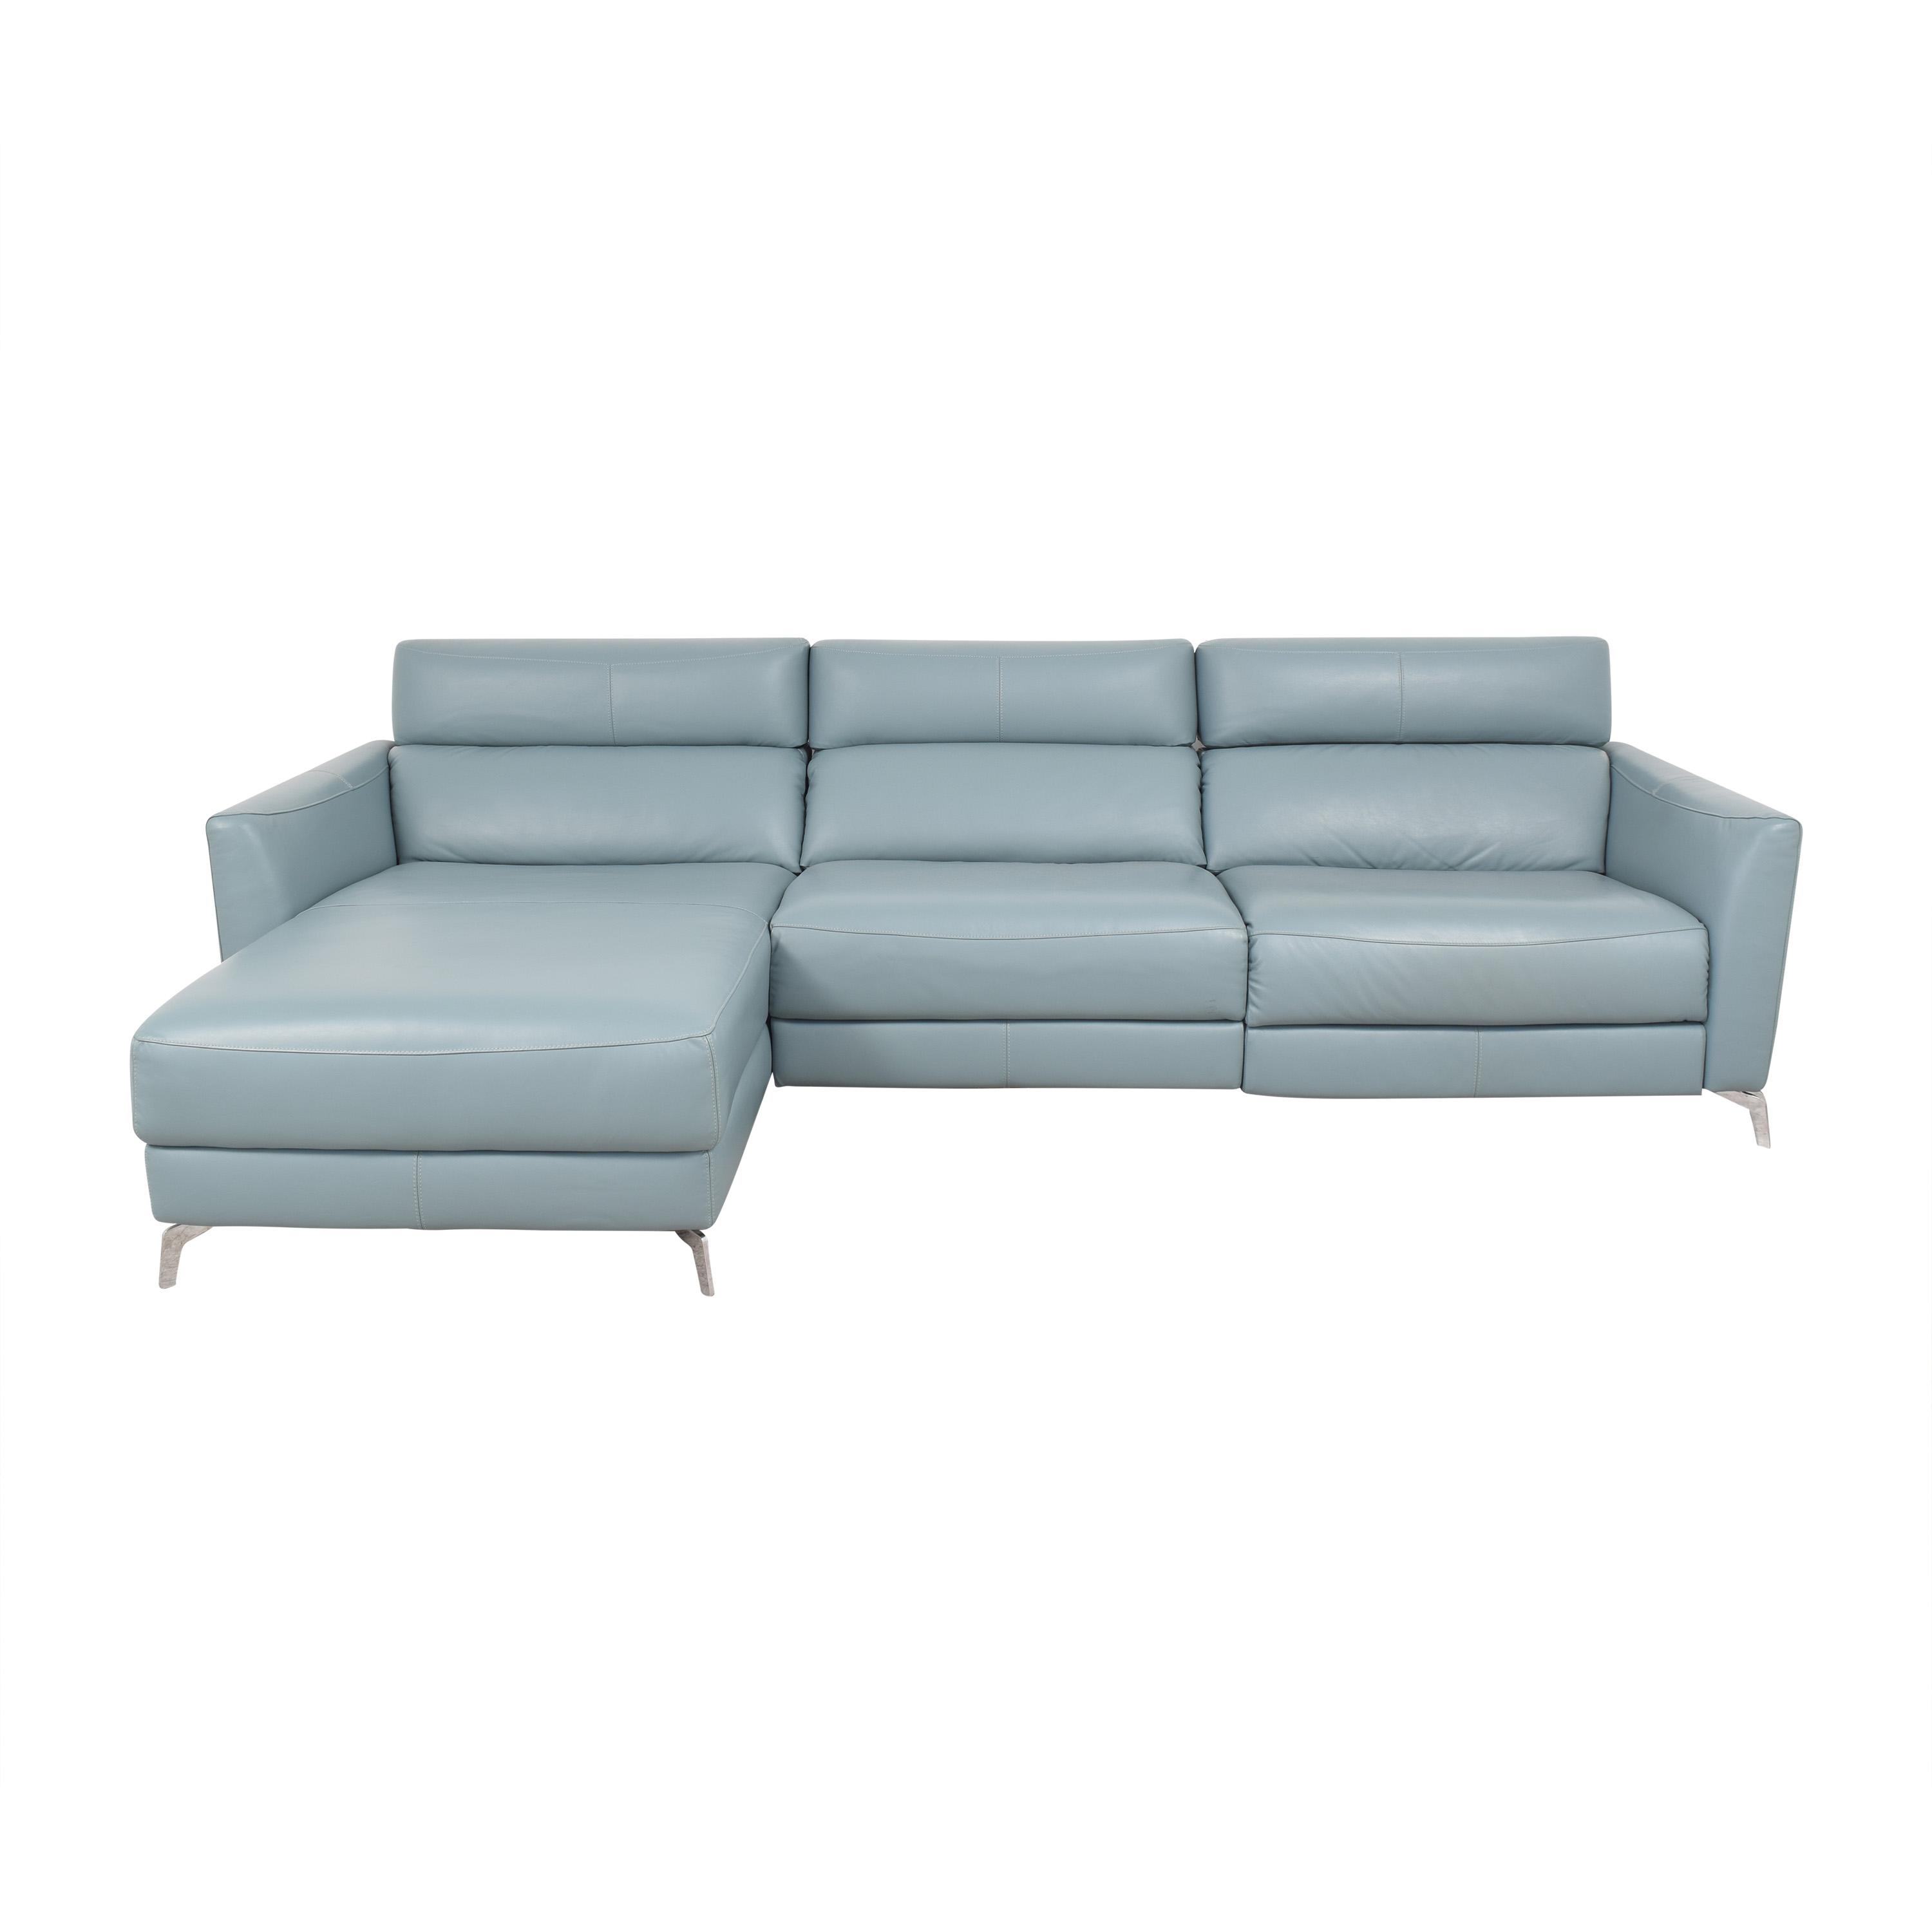 Natuzzi Natuzzi Reclining Sectional with Chaise second hand